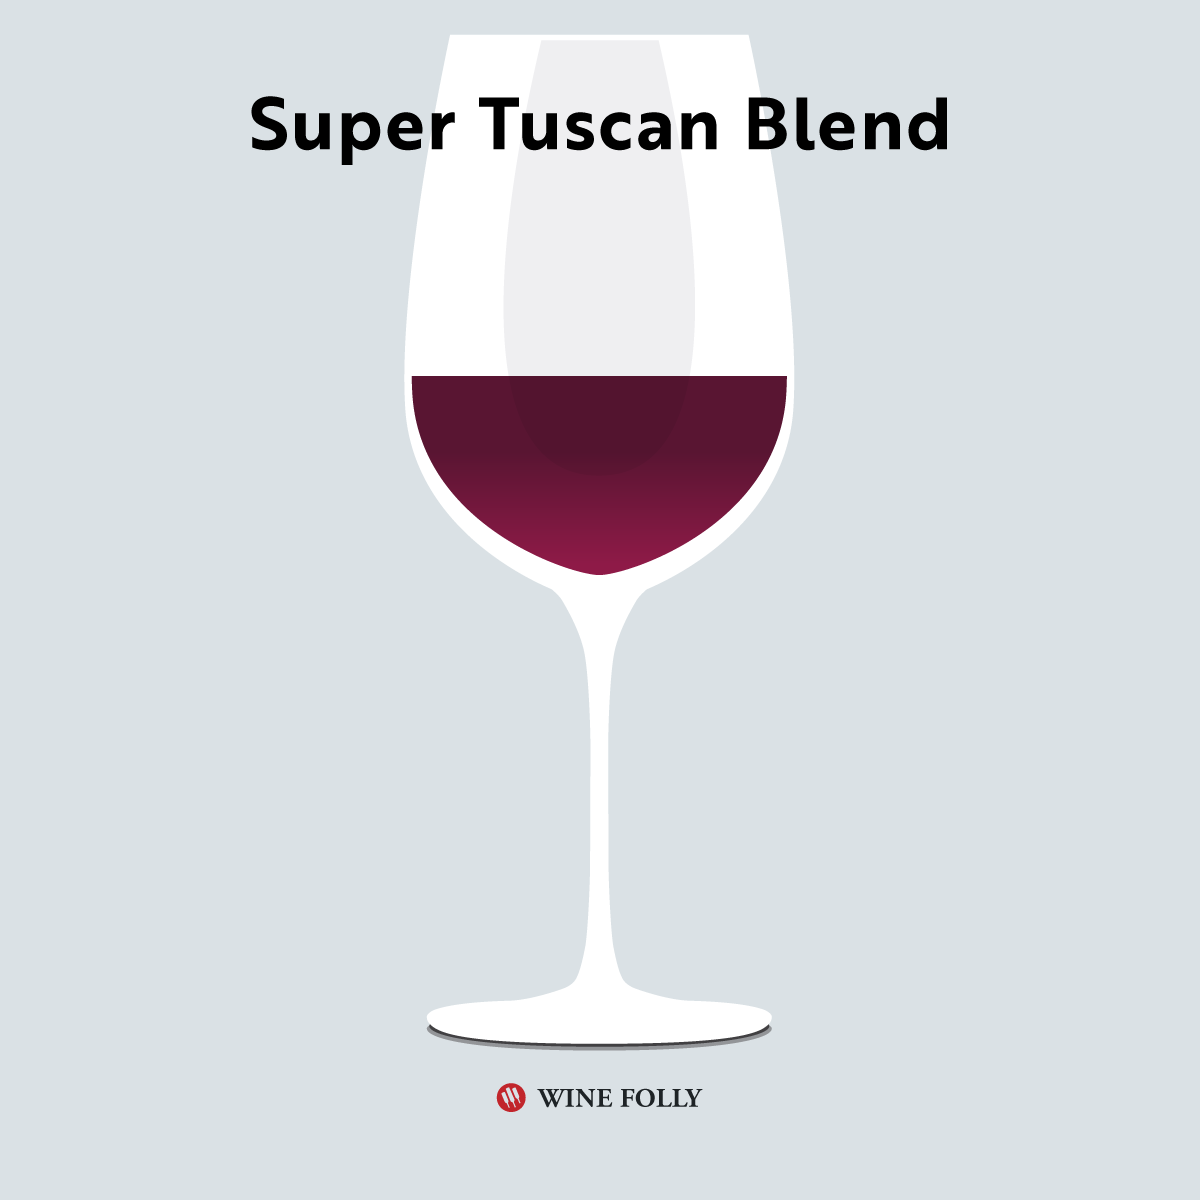 A glass of Super Tuscan Blend wine by Wine Folly